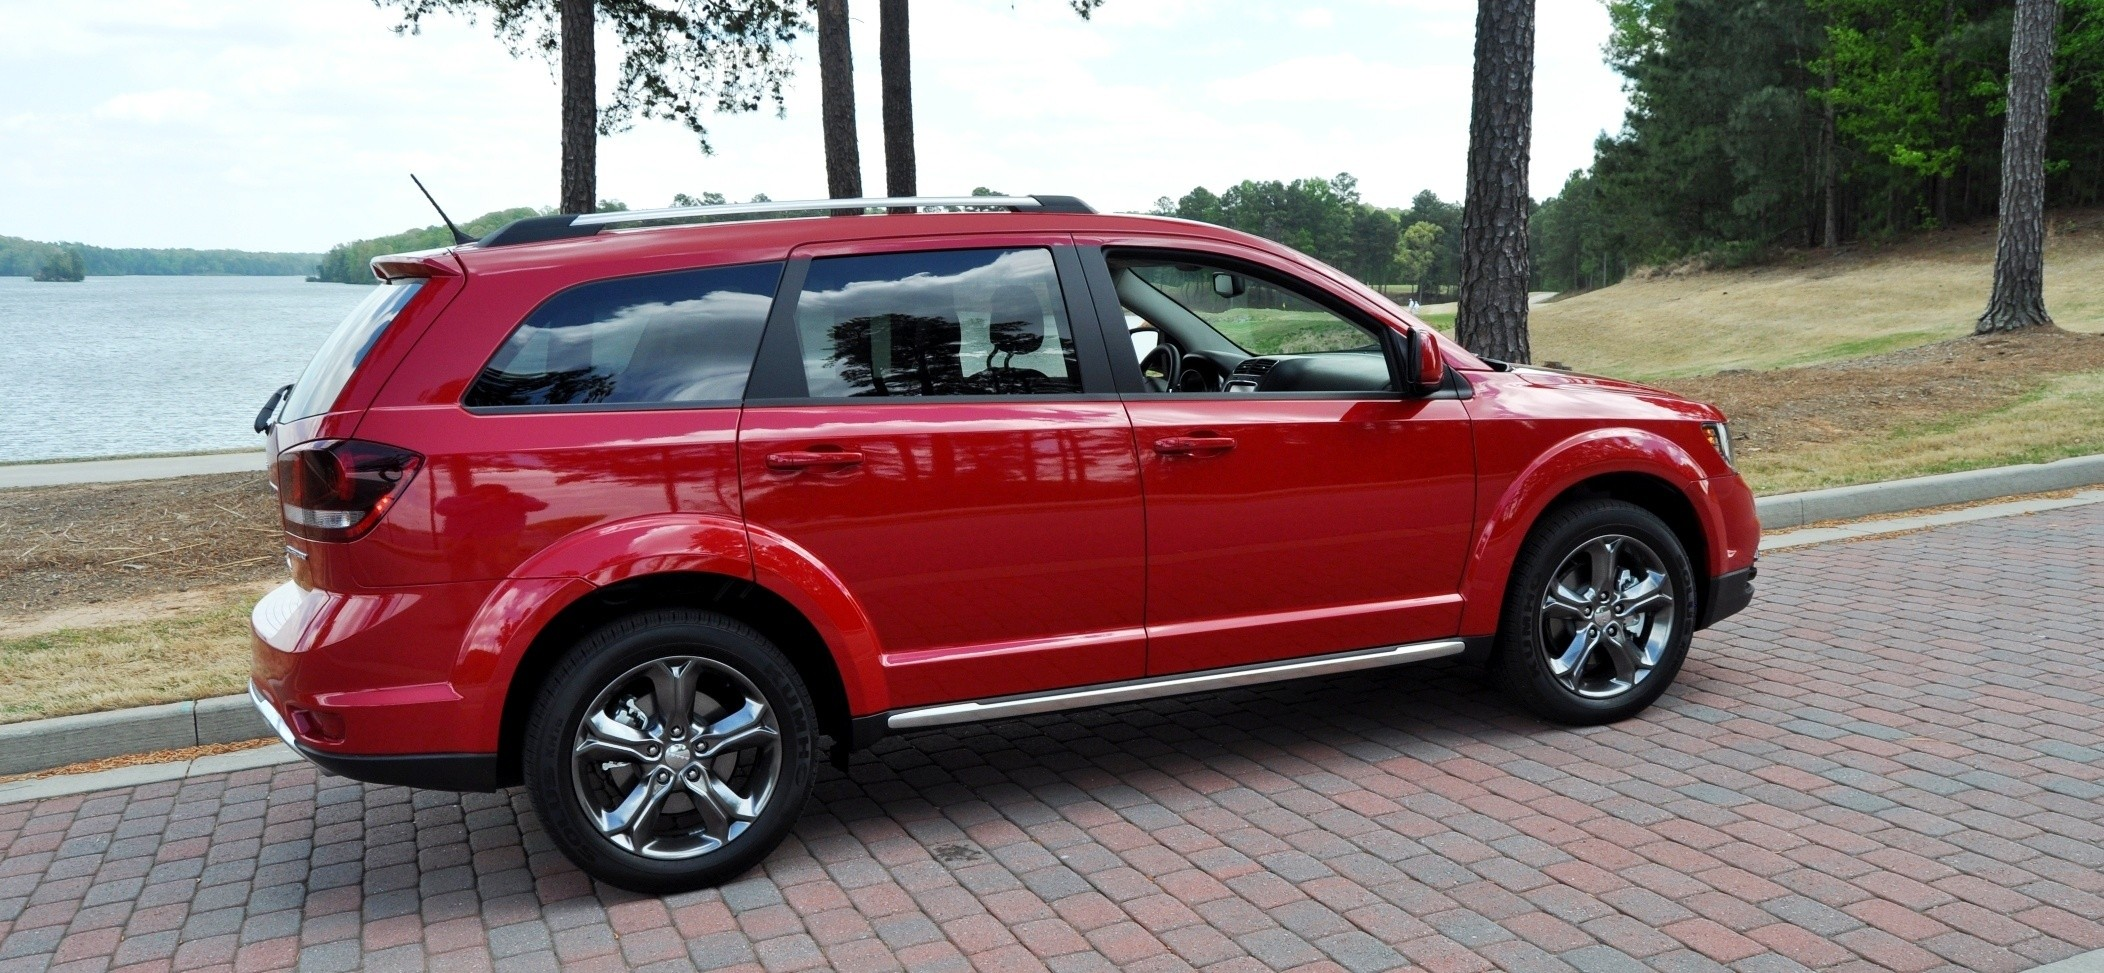 Road Test Review - 2014 Dodge Journey Crossroad